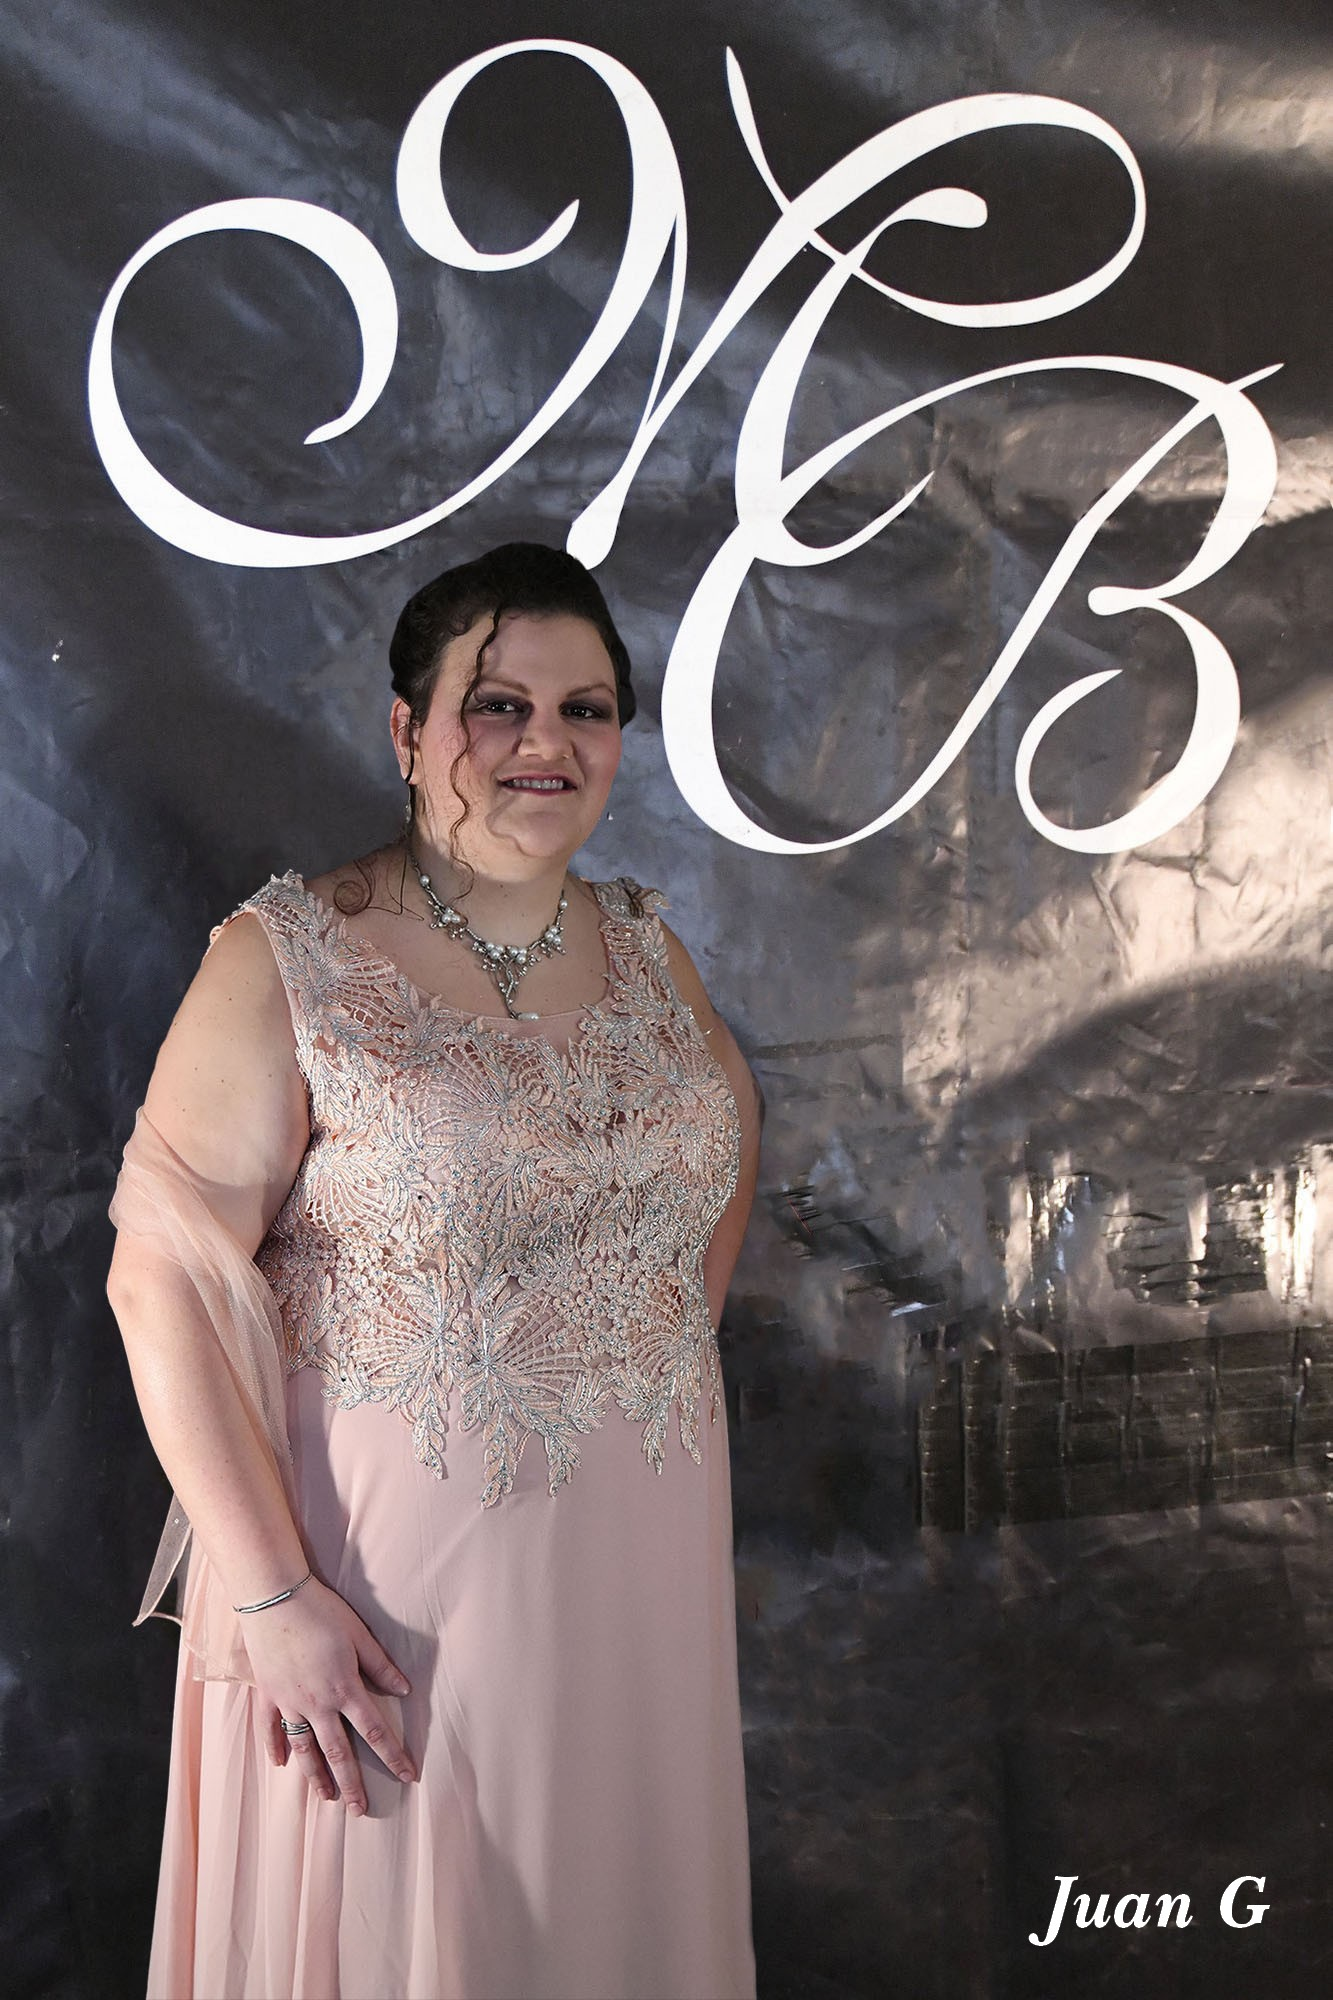 N° 10 Thiphanie Candidate Miss Ronde Alsace 2020